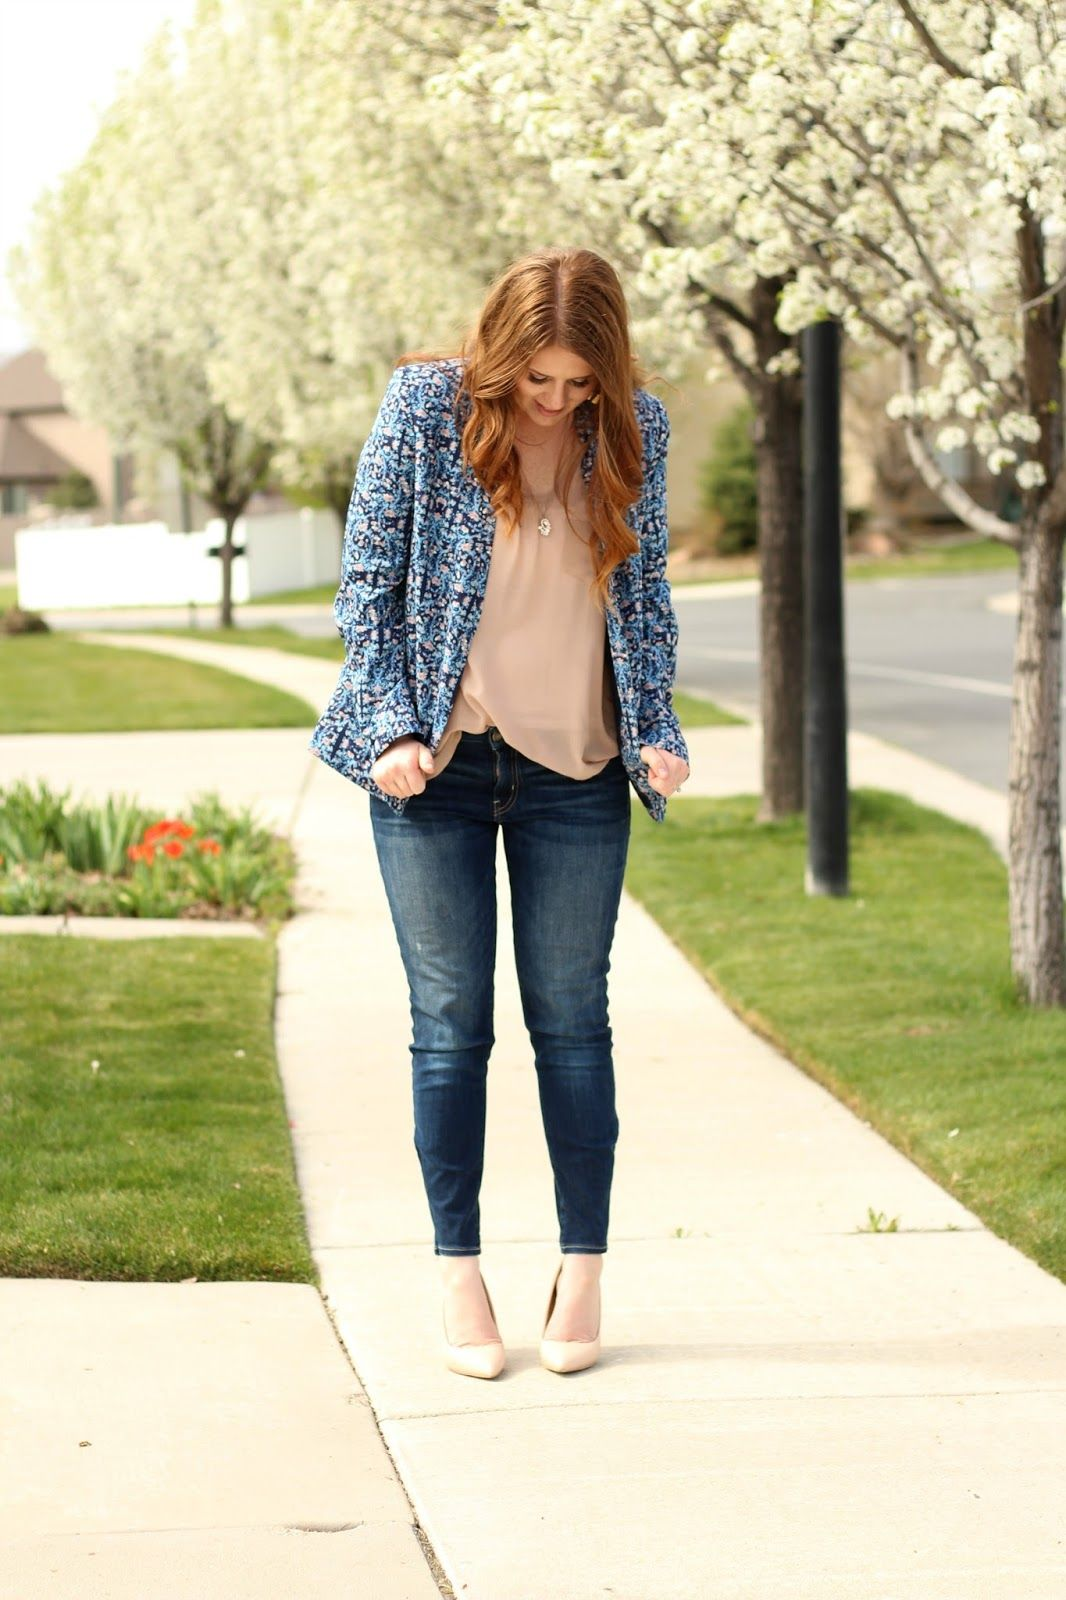 Nightchayde: Blossoms. Floral Blazer | Beige Top | Skinny Jeans | Beige Heels | Delicate Necklace | Outfit Idea| Modest Fashion| Budget Style.